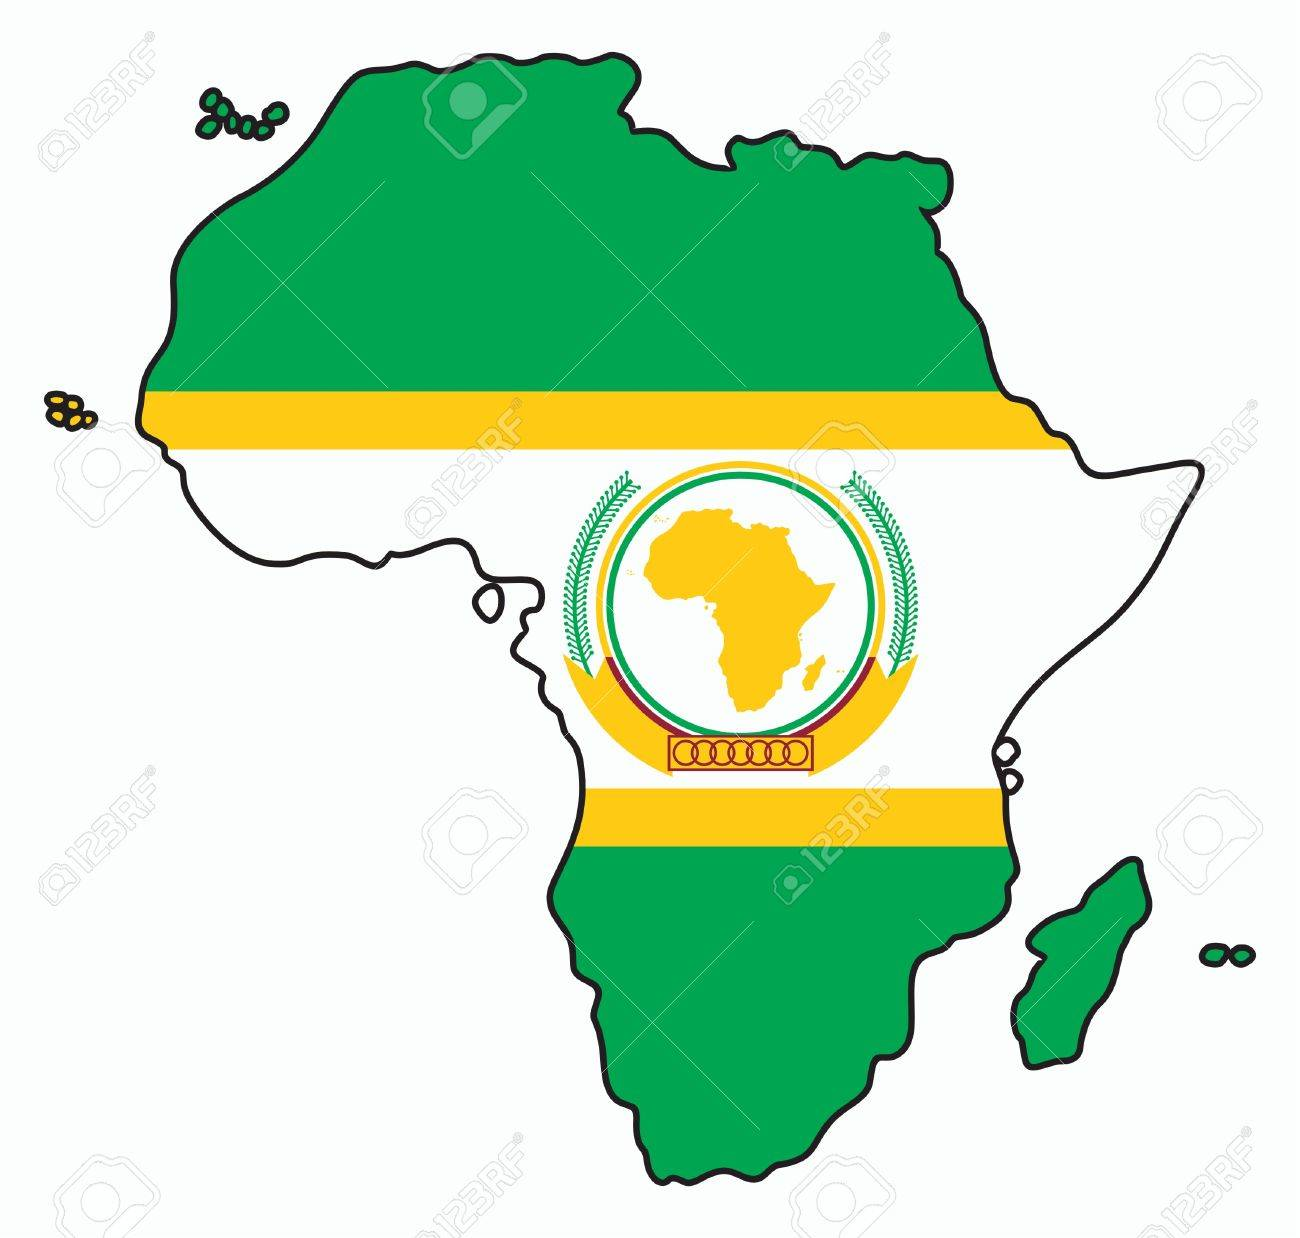 African Union Map.A Map Of Africa Colored Like The Flag Of The African Union